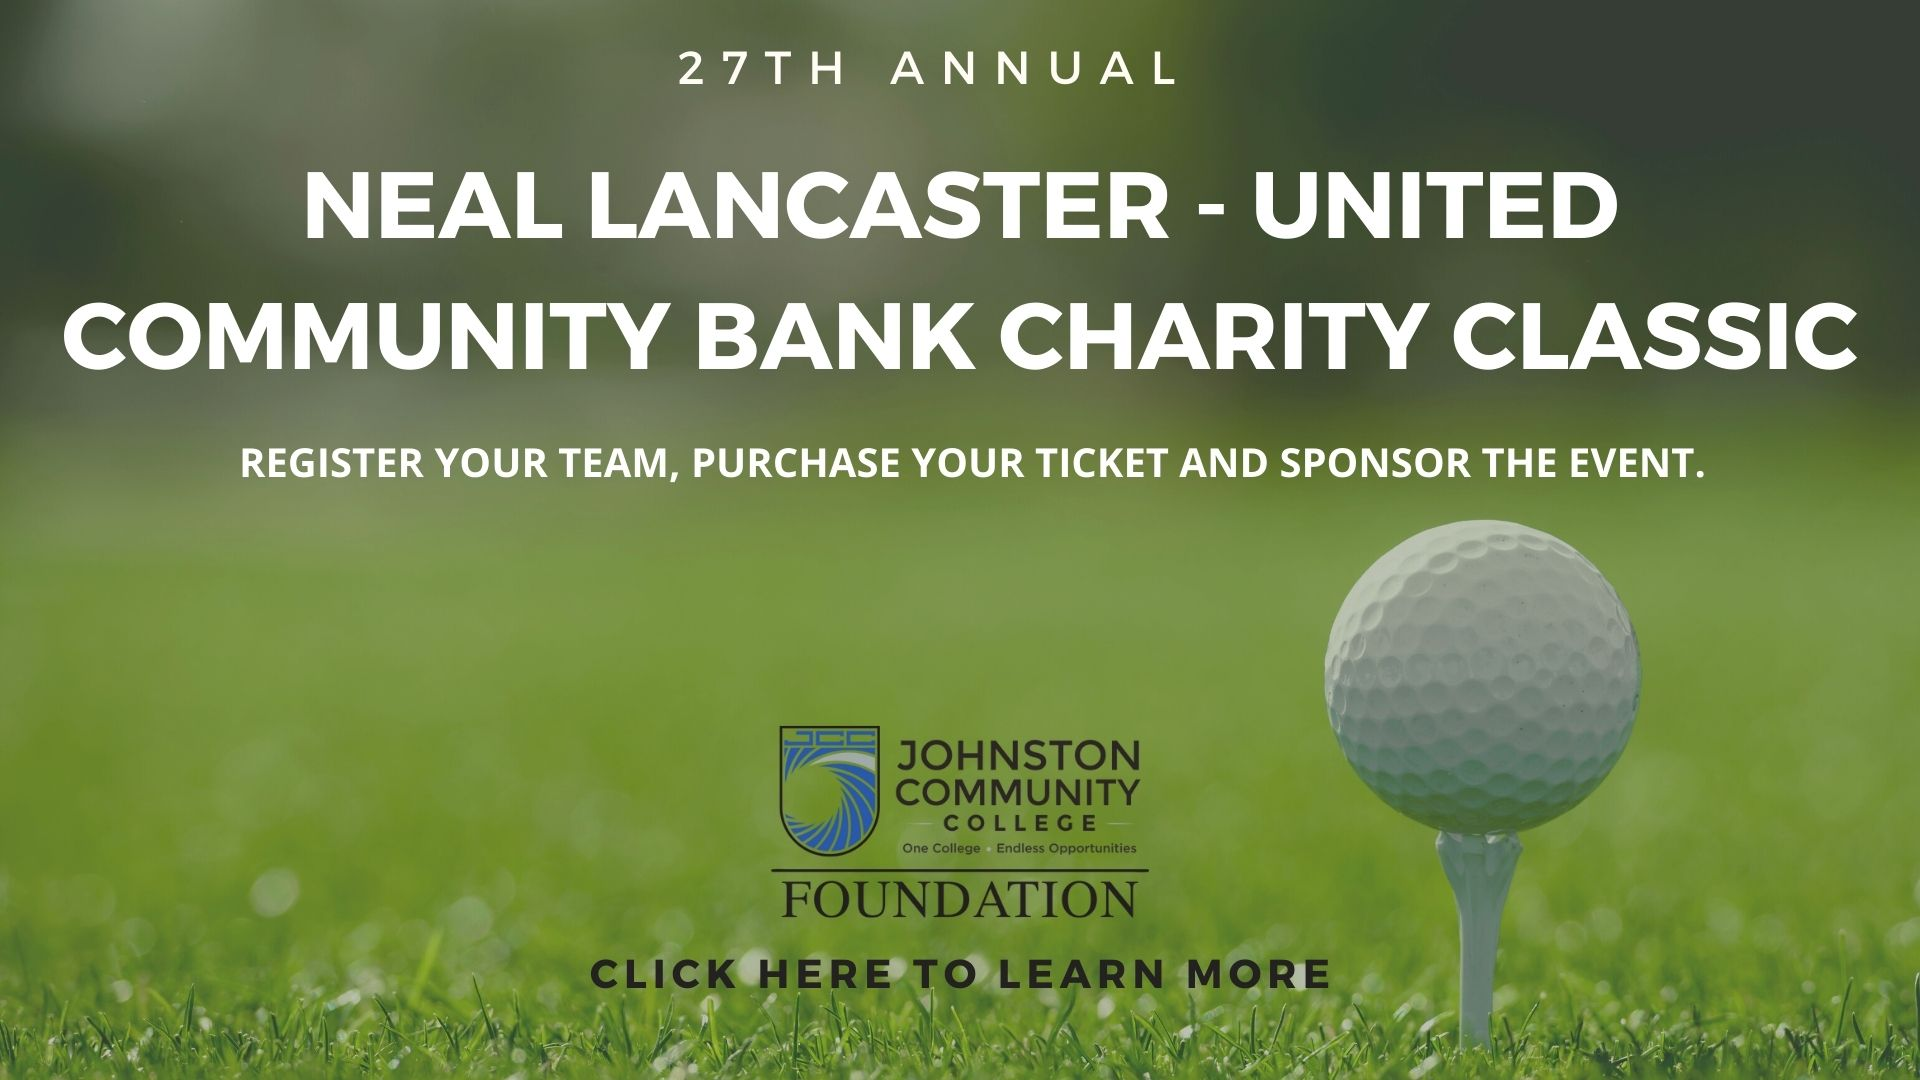 Neal Lancaster - United Community Bank Charity Classic